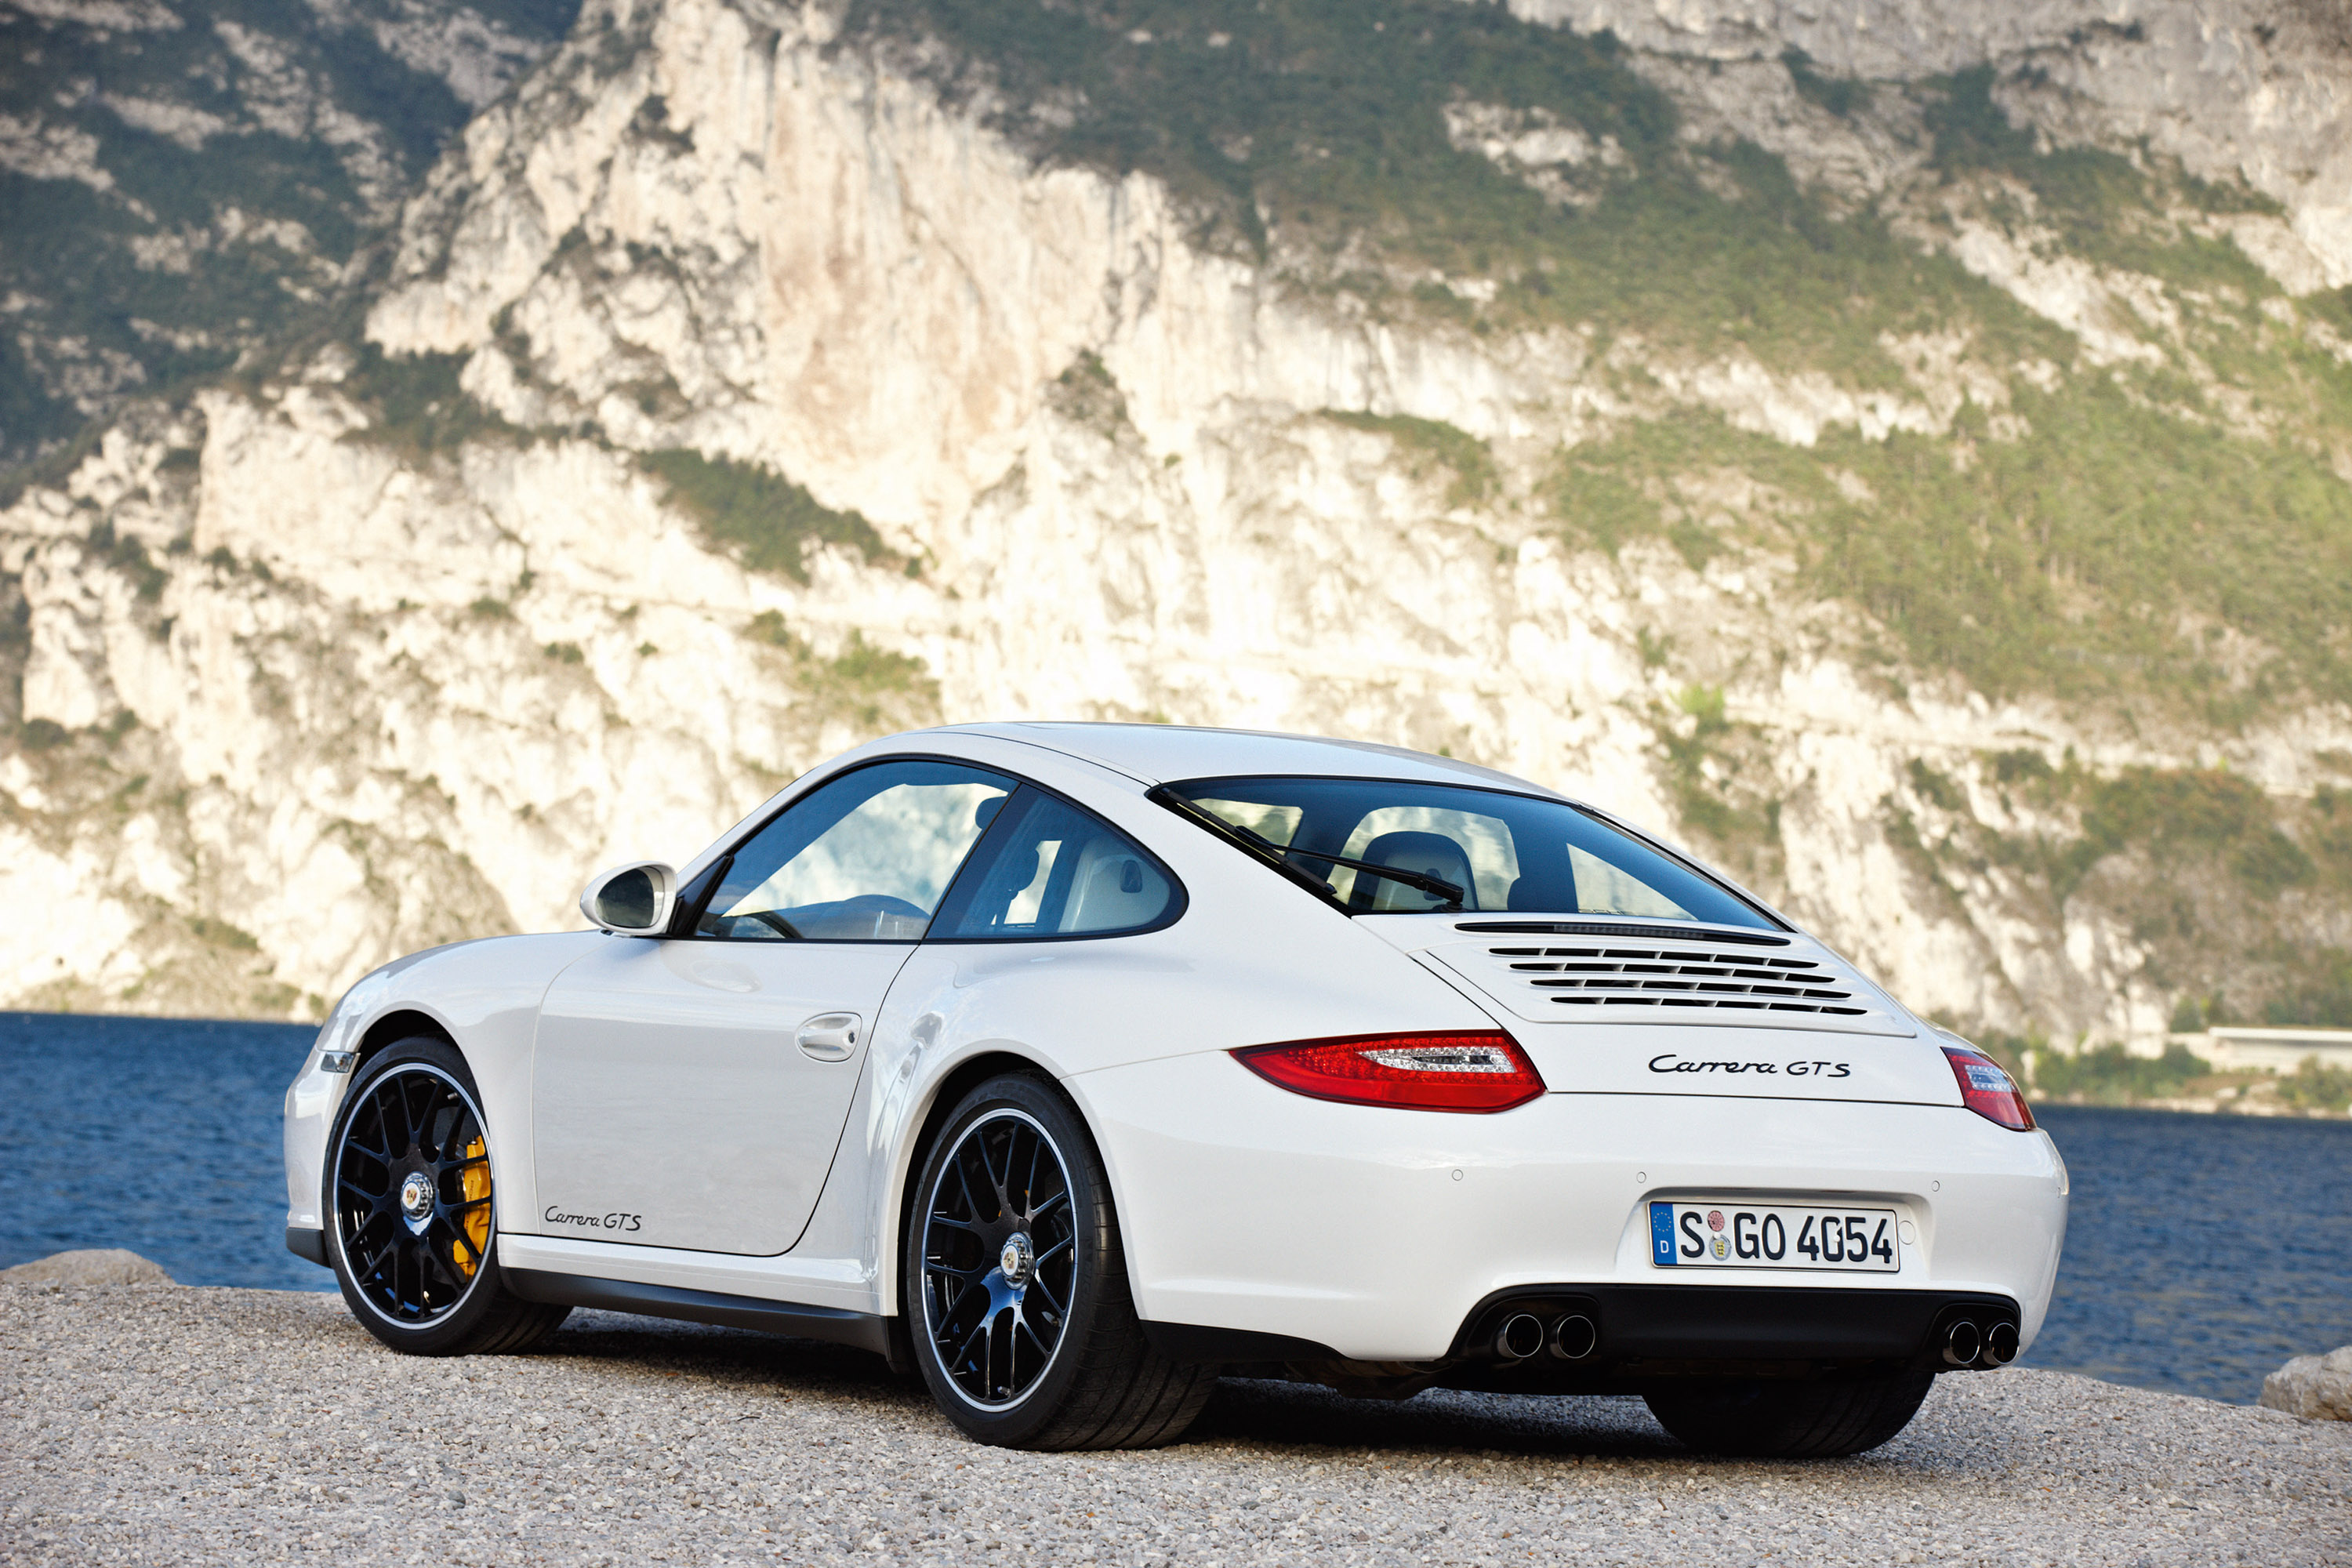 2011 Porsche 911 Carrera Gts Test Drive Video